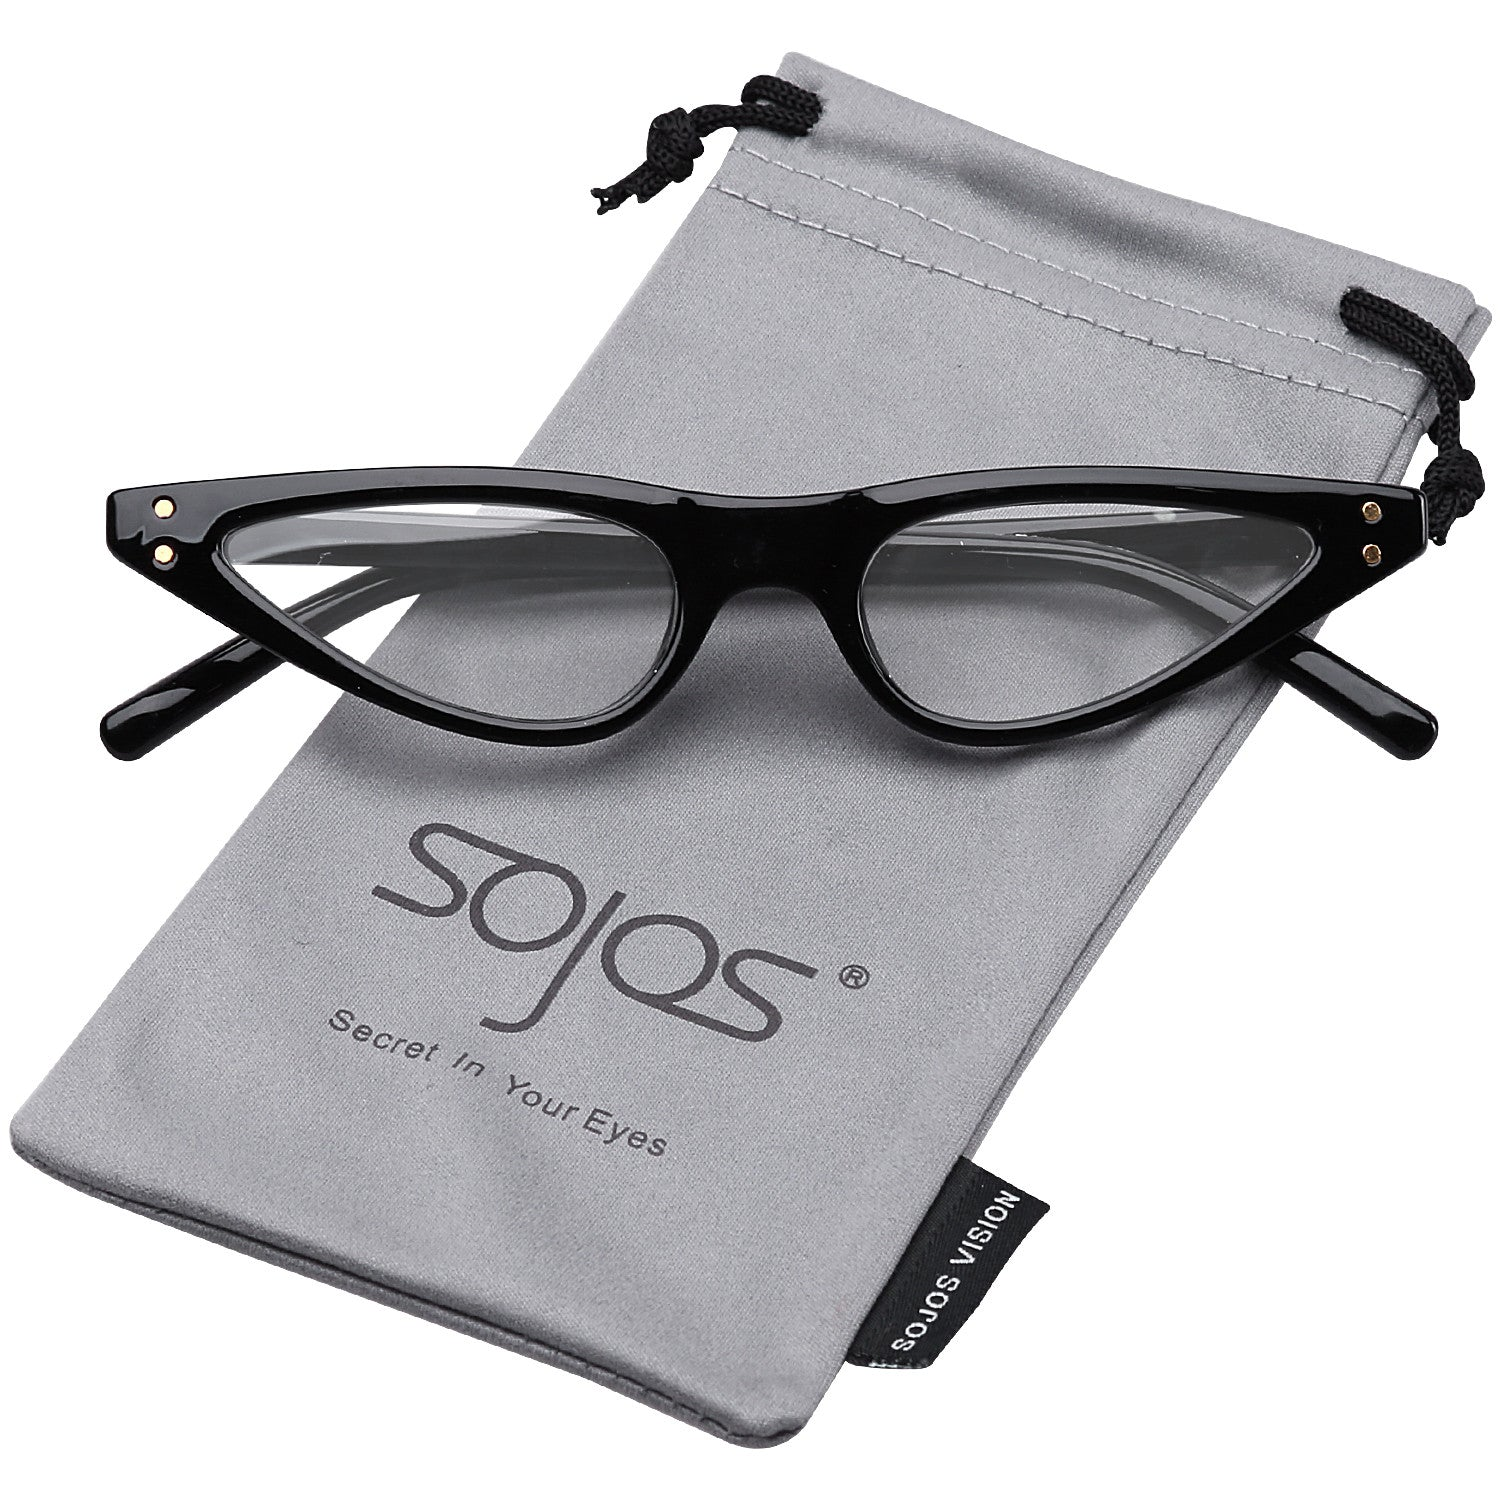 8888      SojoS Vintage Clout Goggles Cat Eye Retro Sunglasses Small Fashion Rivet Glasses SJ2046